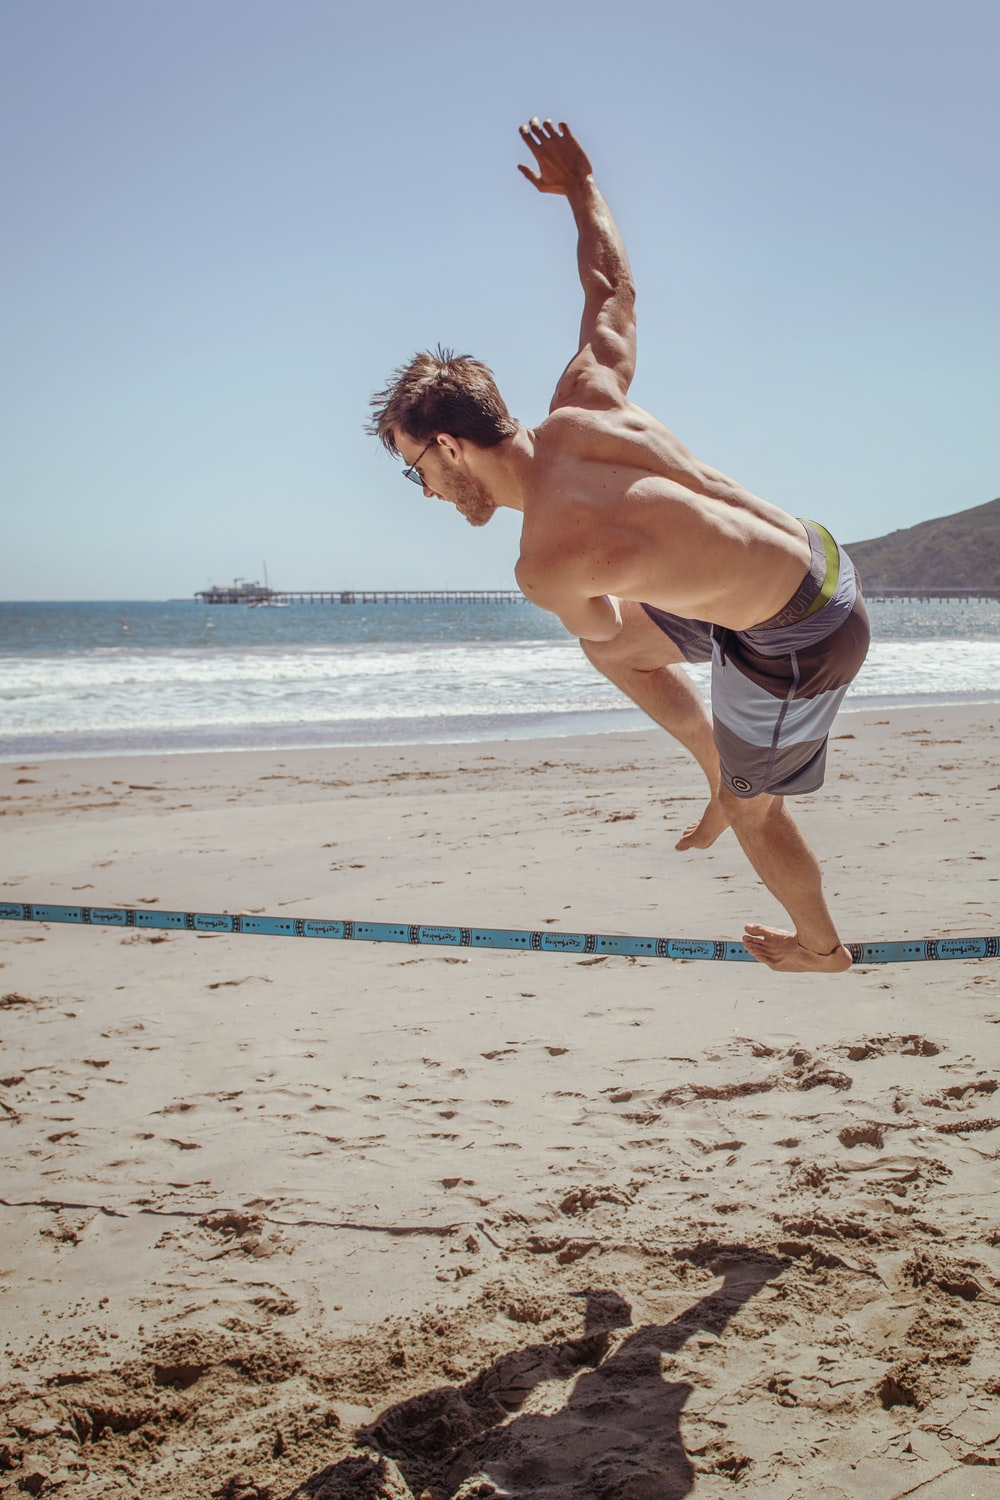 man in sunglasses and board shorts walking on rope